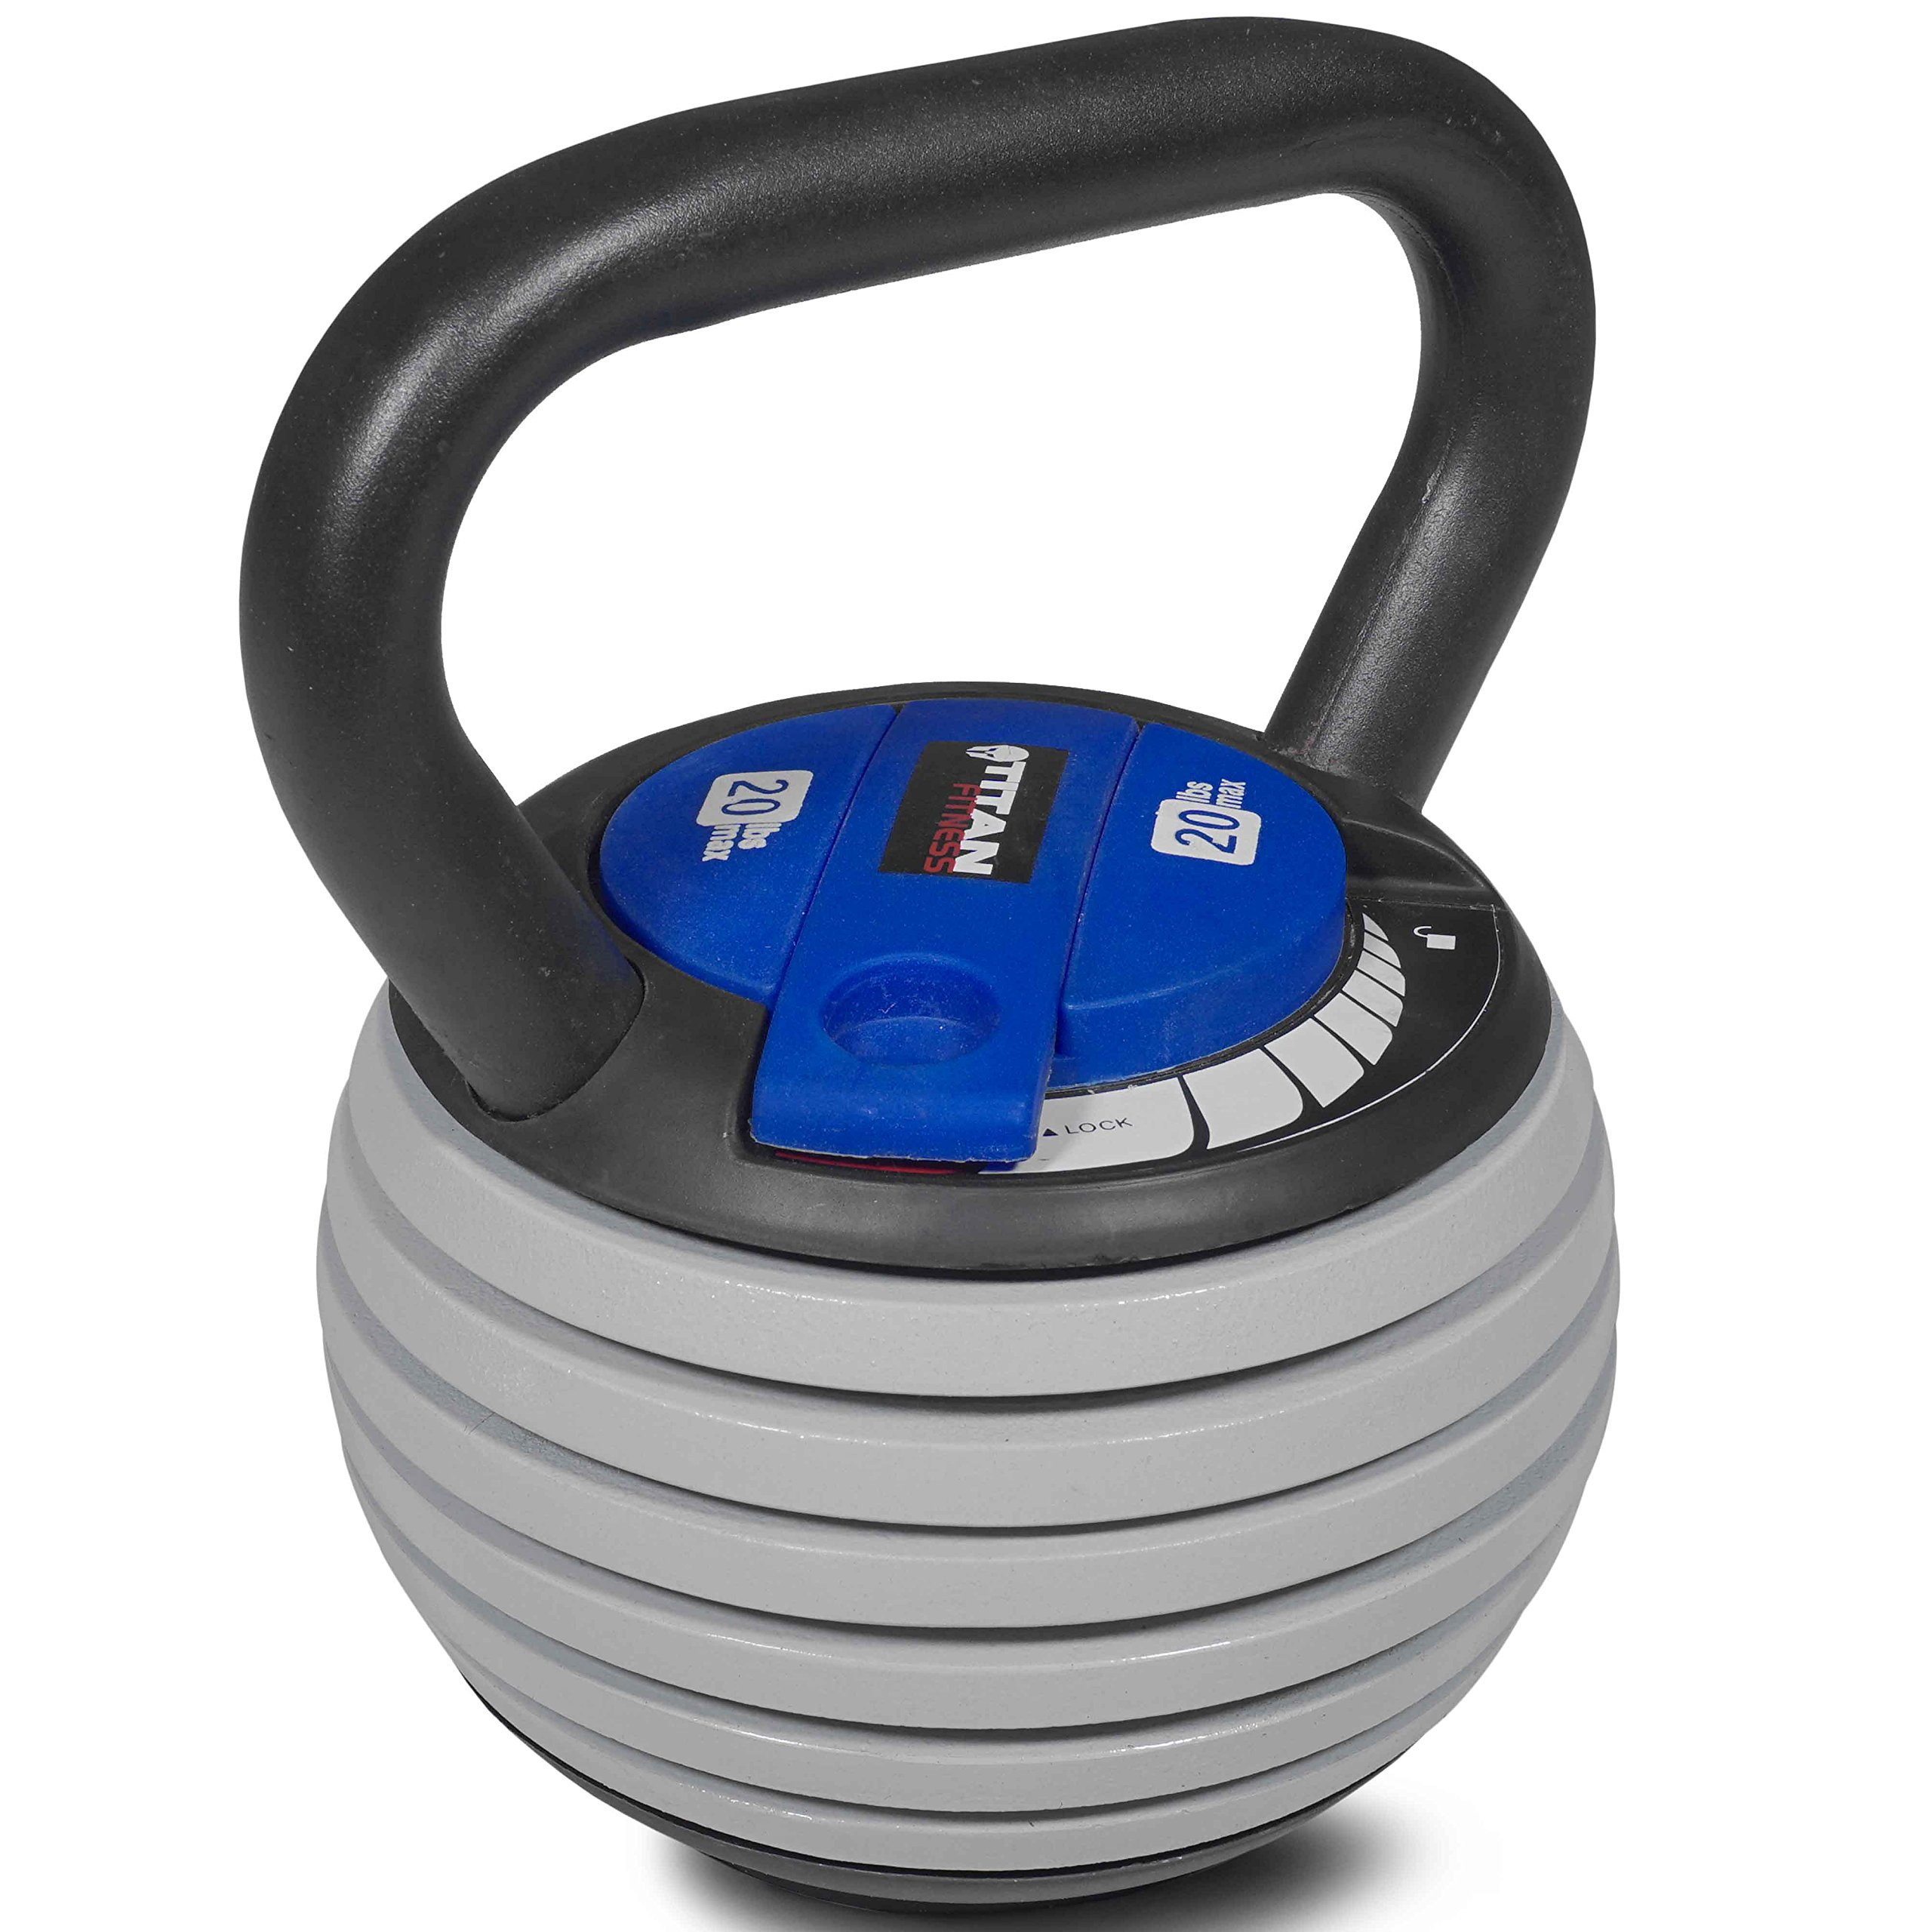 Titan Fitness 5-20 lb Adjustable Kettlebell Weight Lifting Swing Workout by Titan Fitness